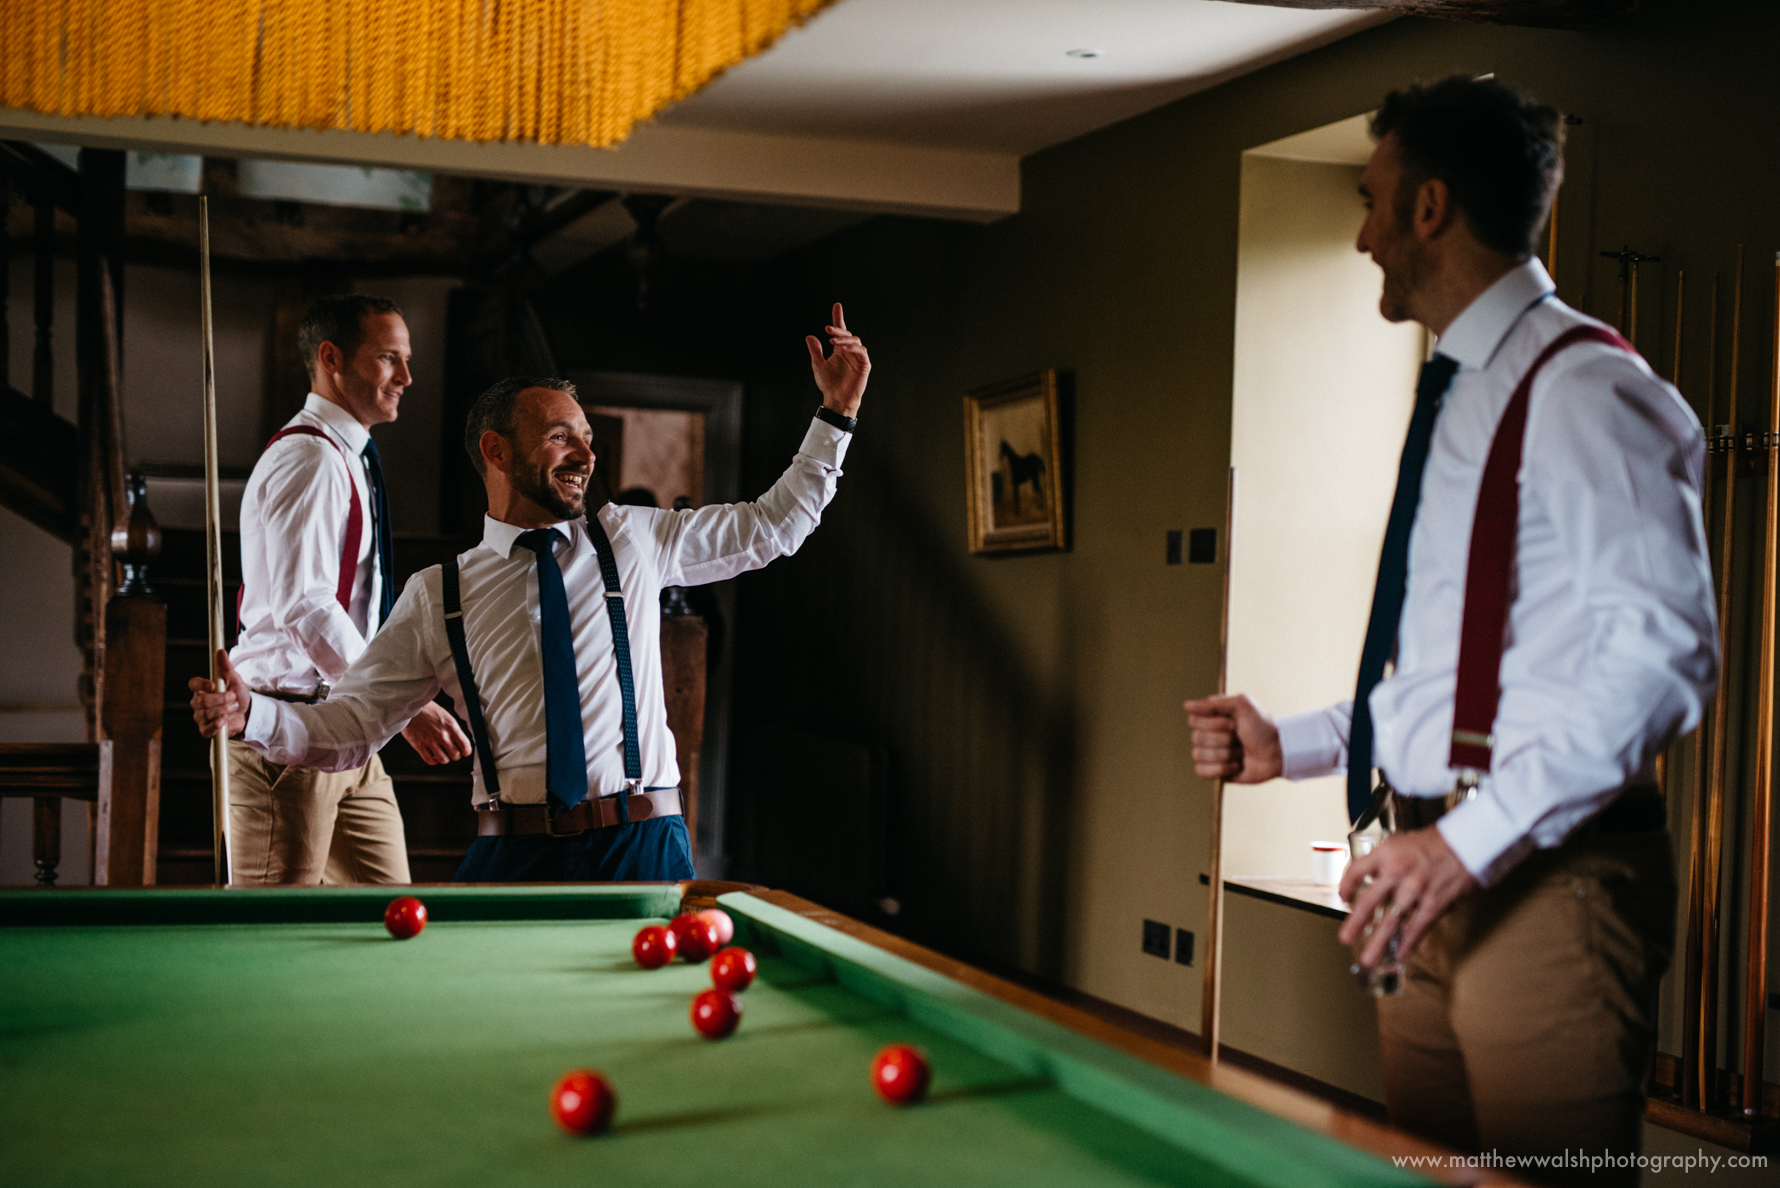 The grooms winning shot